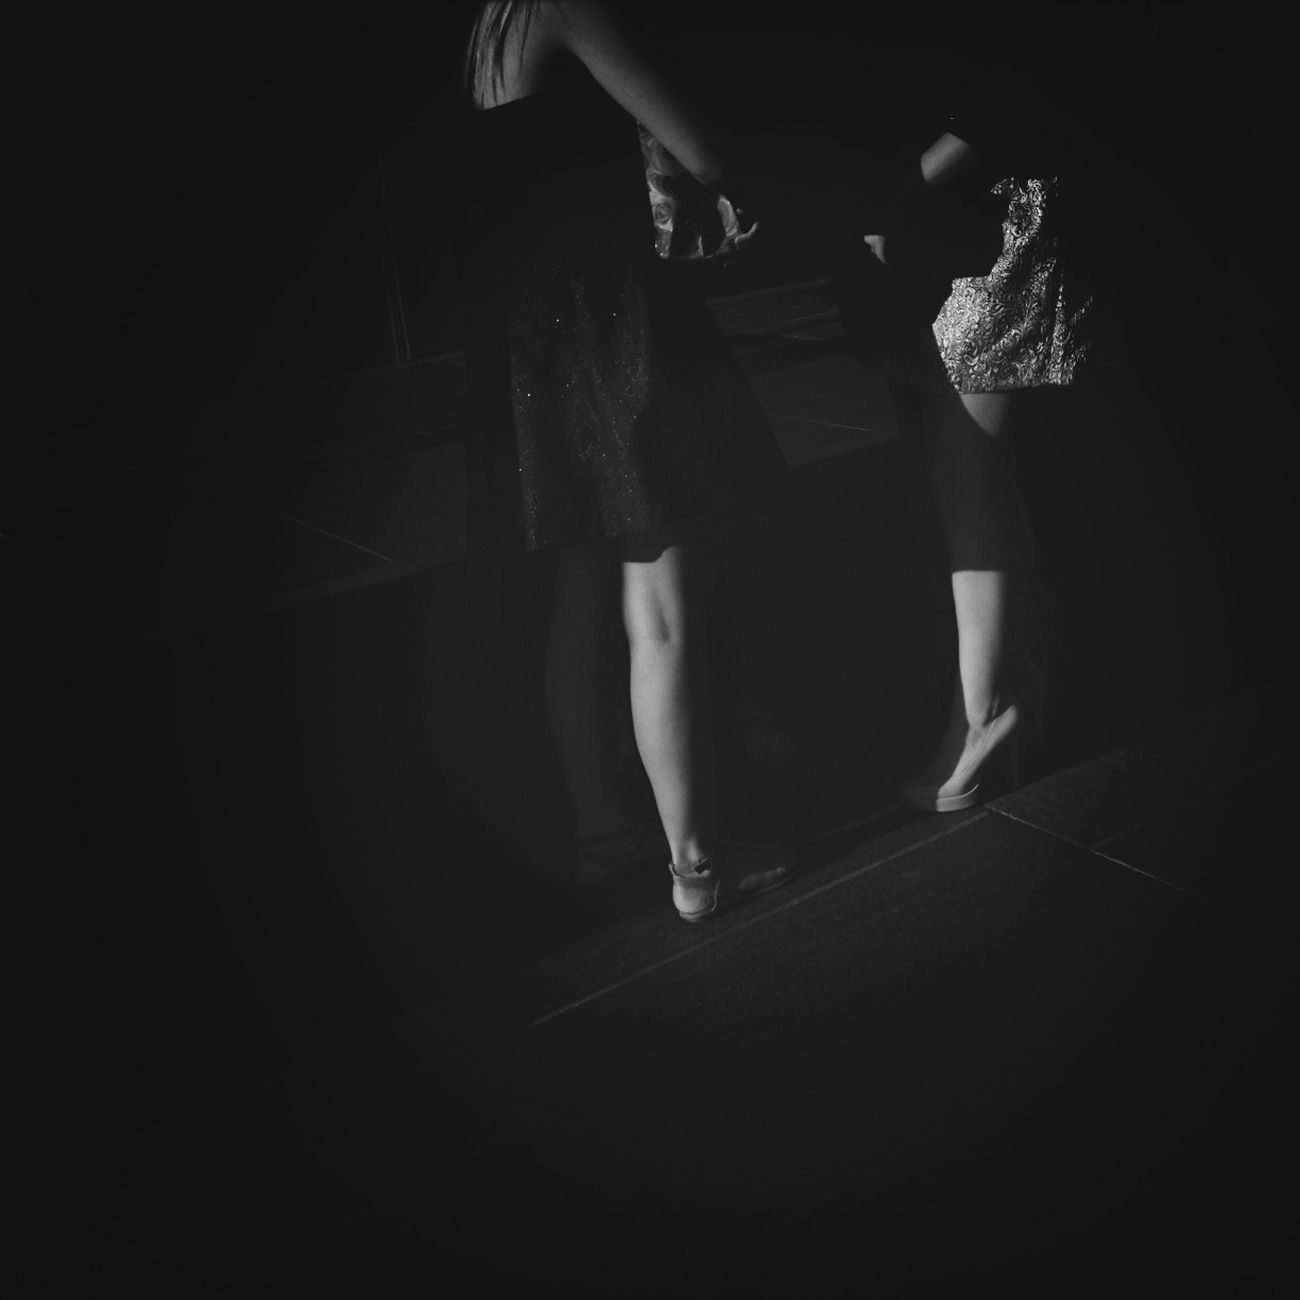 Streetphotography Other People's Shoes Black And Less White